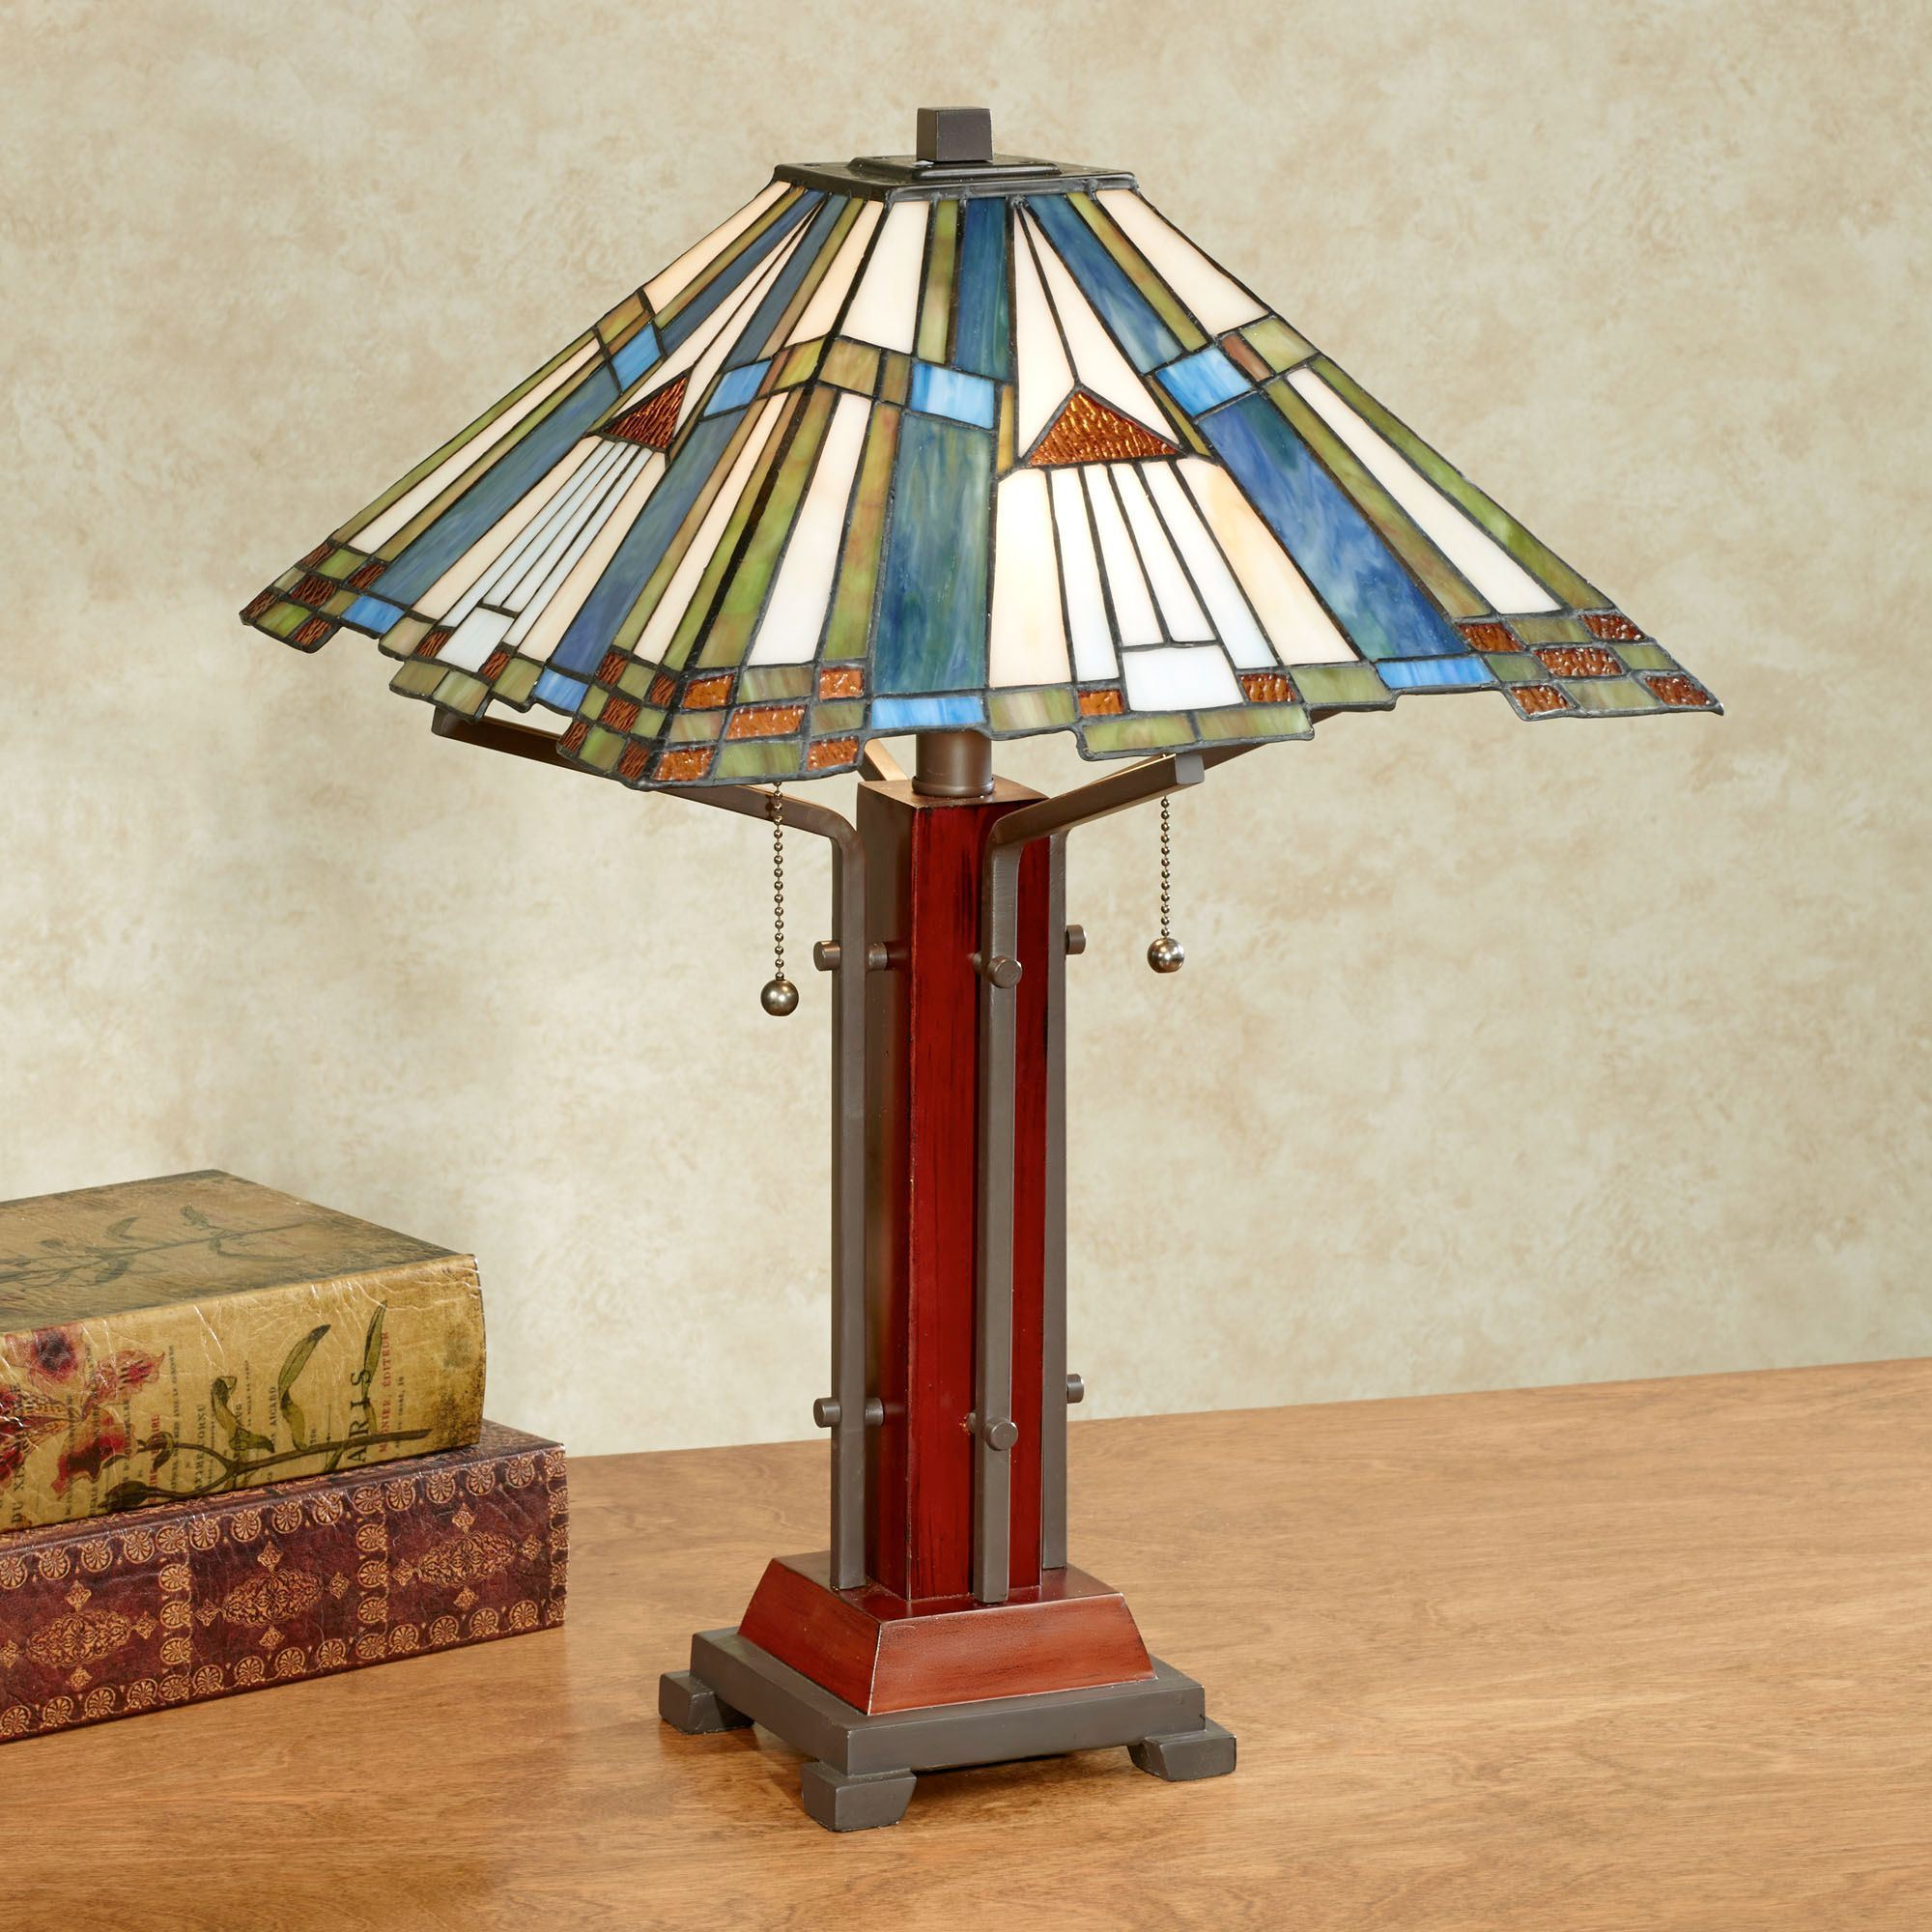 camino southwest stained glass table lamp accent lamps you might also consider porterdale bronze each tool cabinet narrow decorative pin legs pottery barn black coffee target